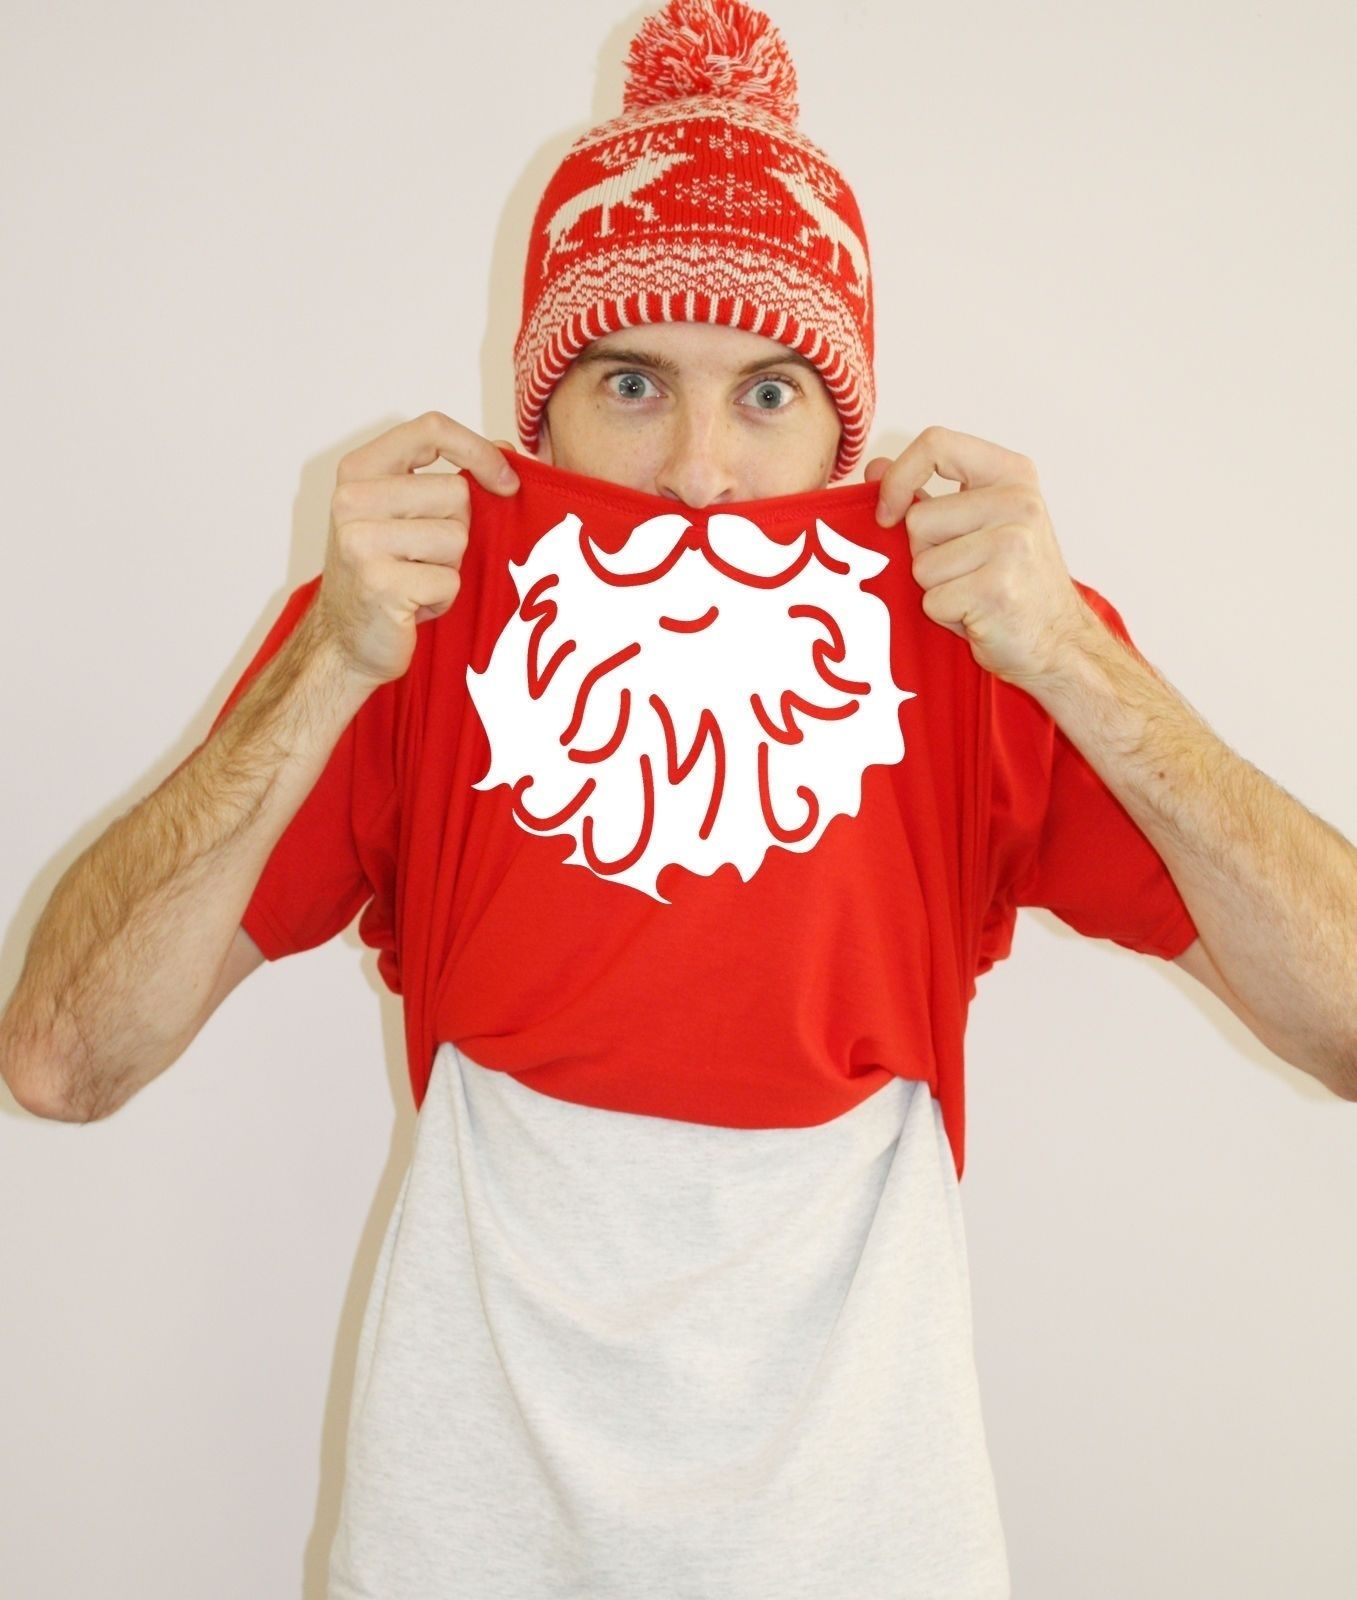 6d7be2597b7 Ask Me Who s Got All The Presents Flip T Shirt FREE BOBBLE HAT Christmas  Santa